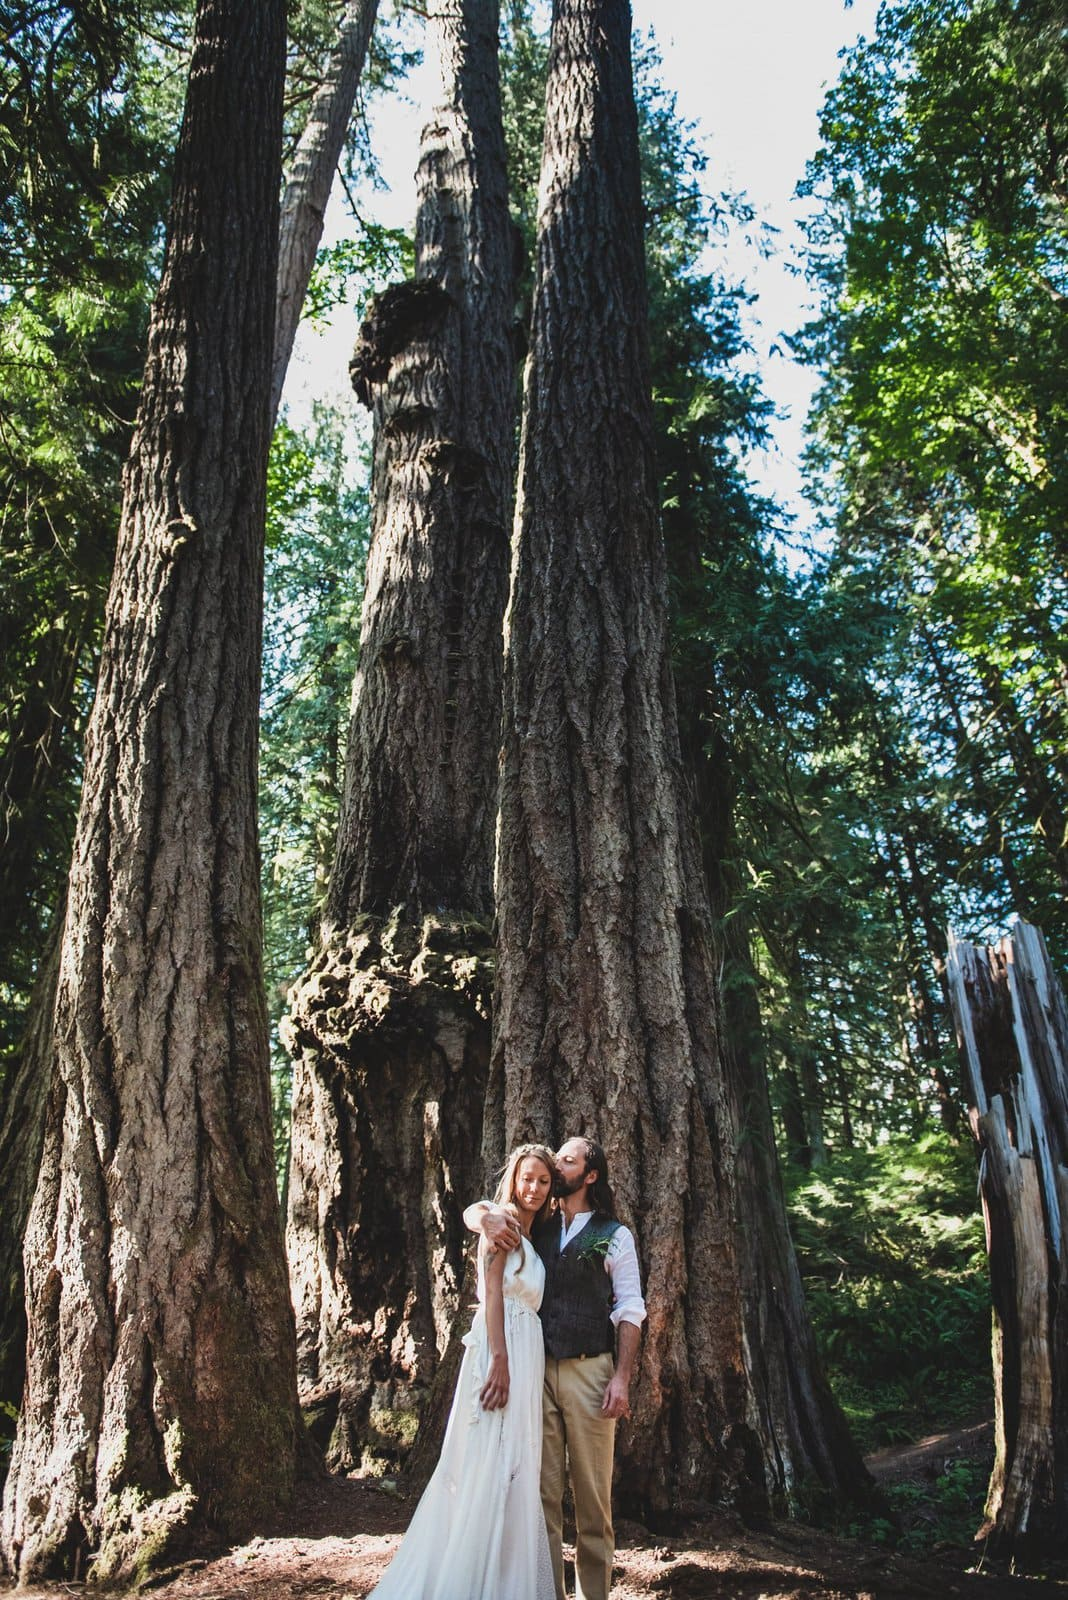 Wedding portraits in intimate forest wedding.